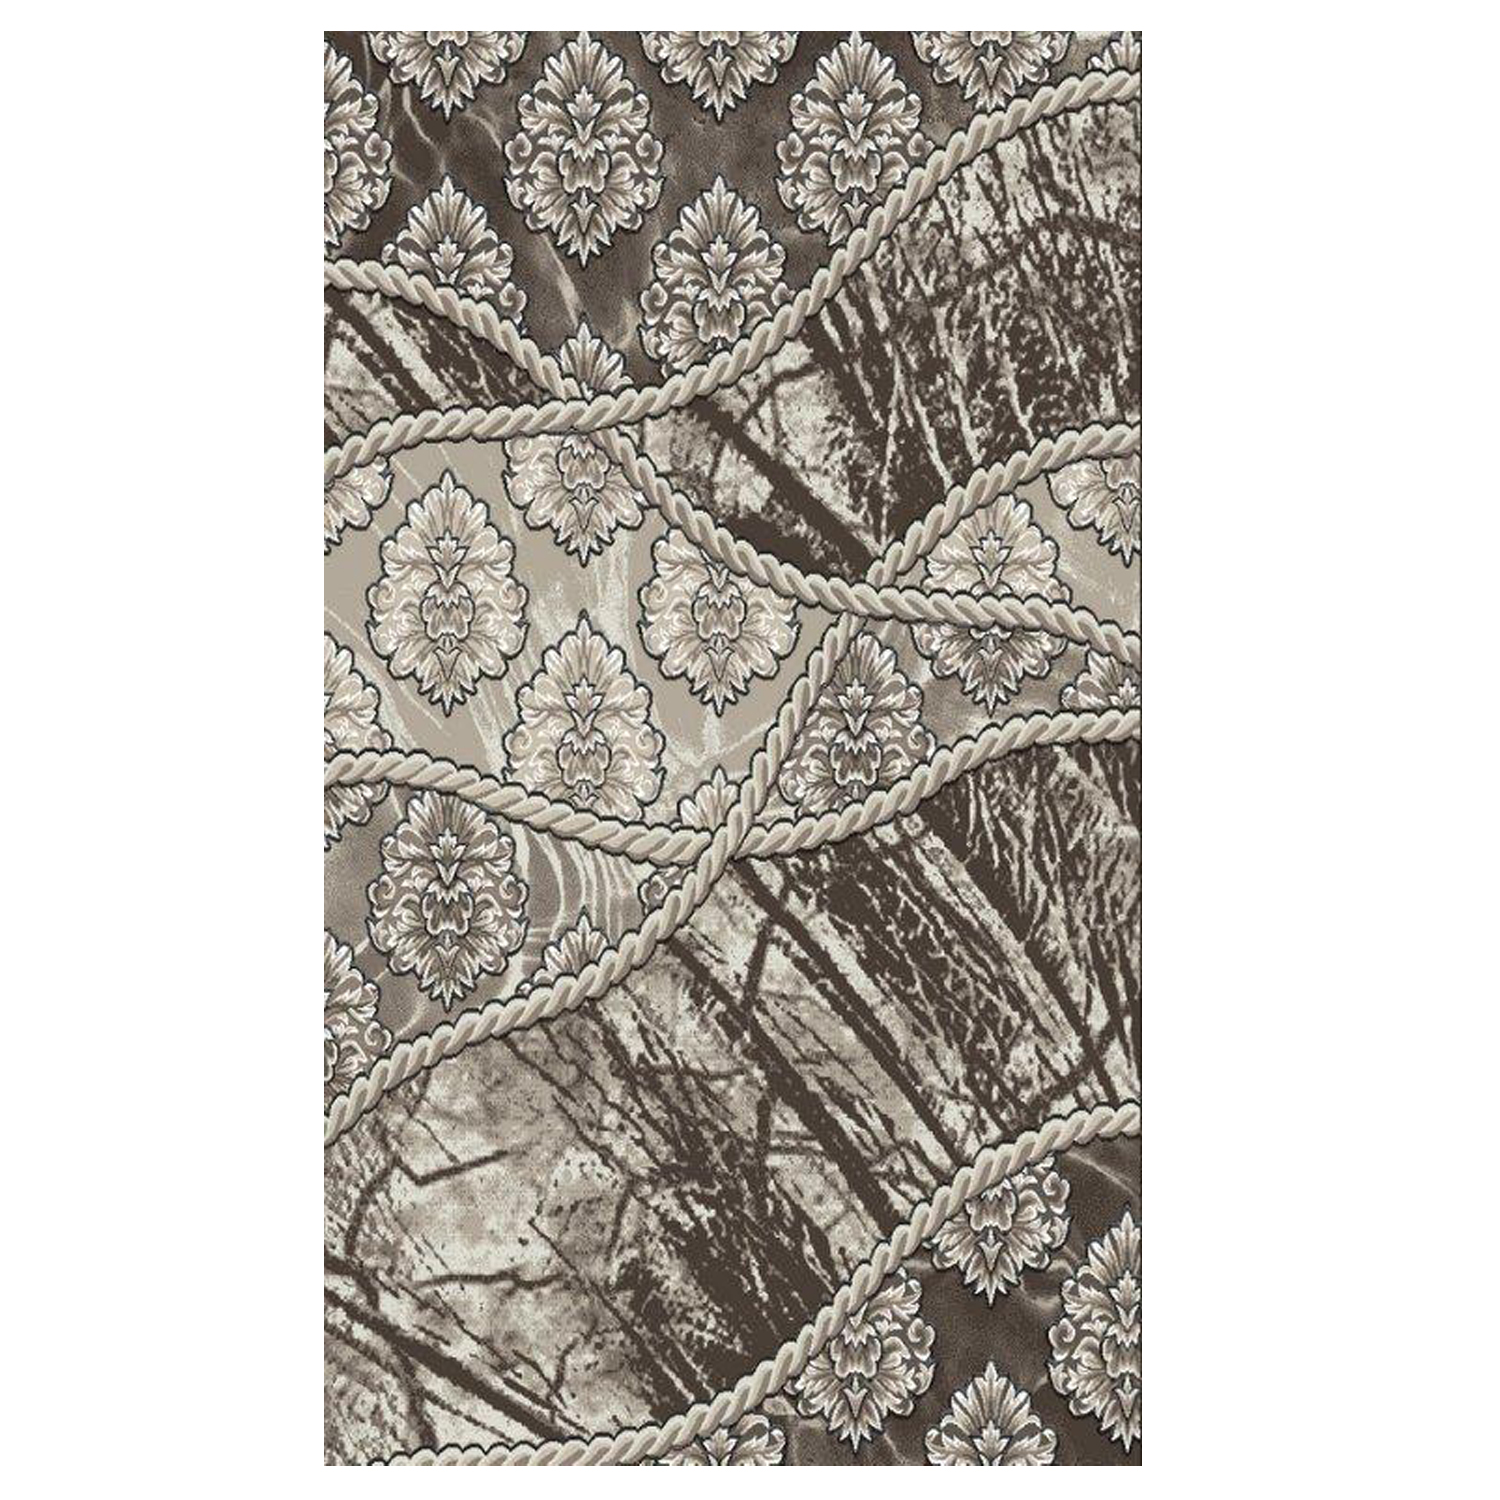 Jewel Brown 2' x 3' Area Rug, BROWN